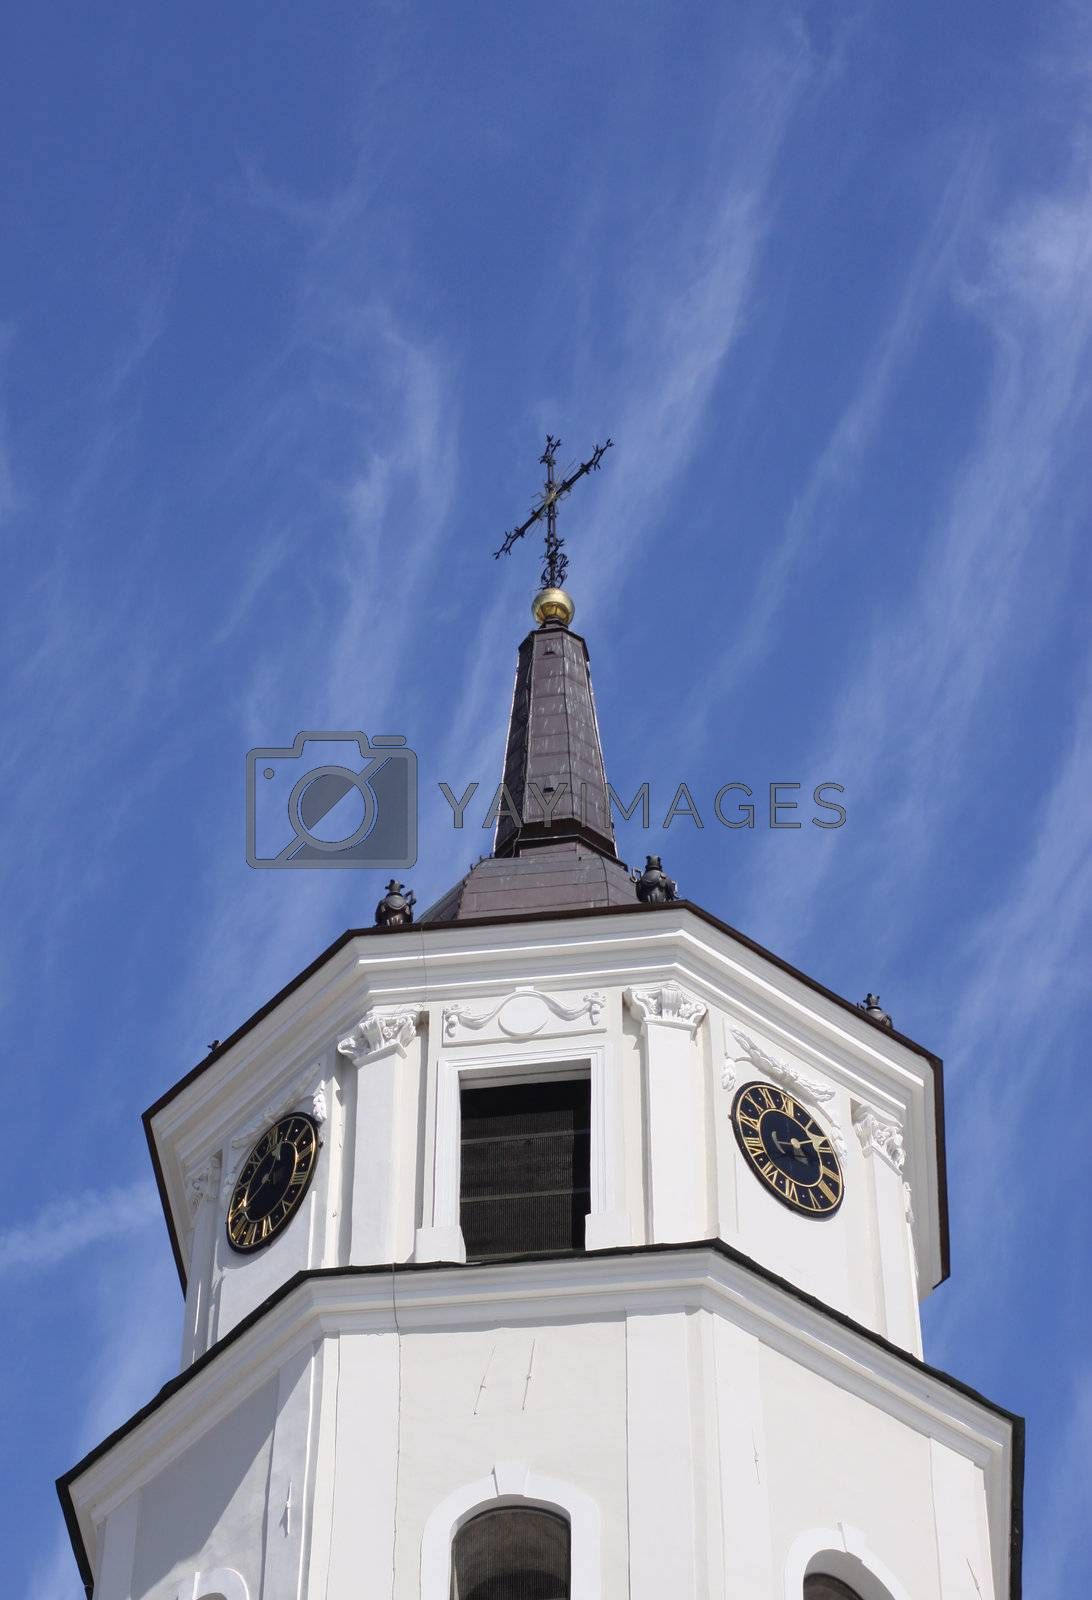 Vilnius cathedral bell tower against blue sky, Lithuania